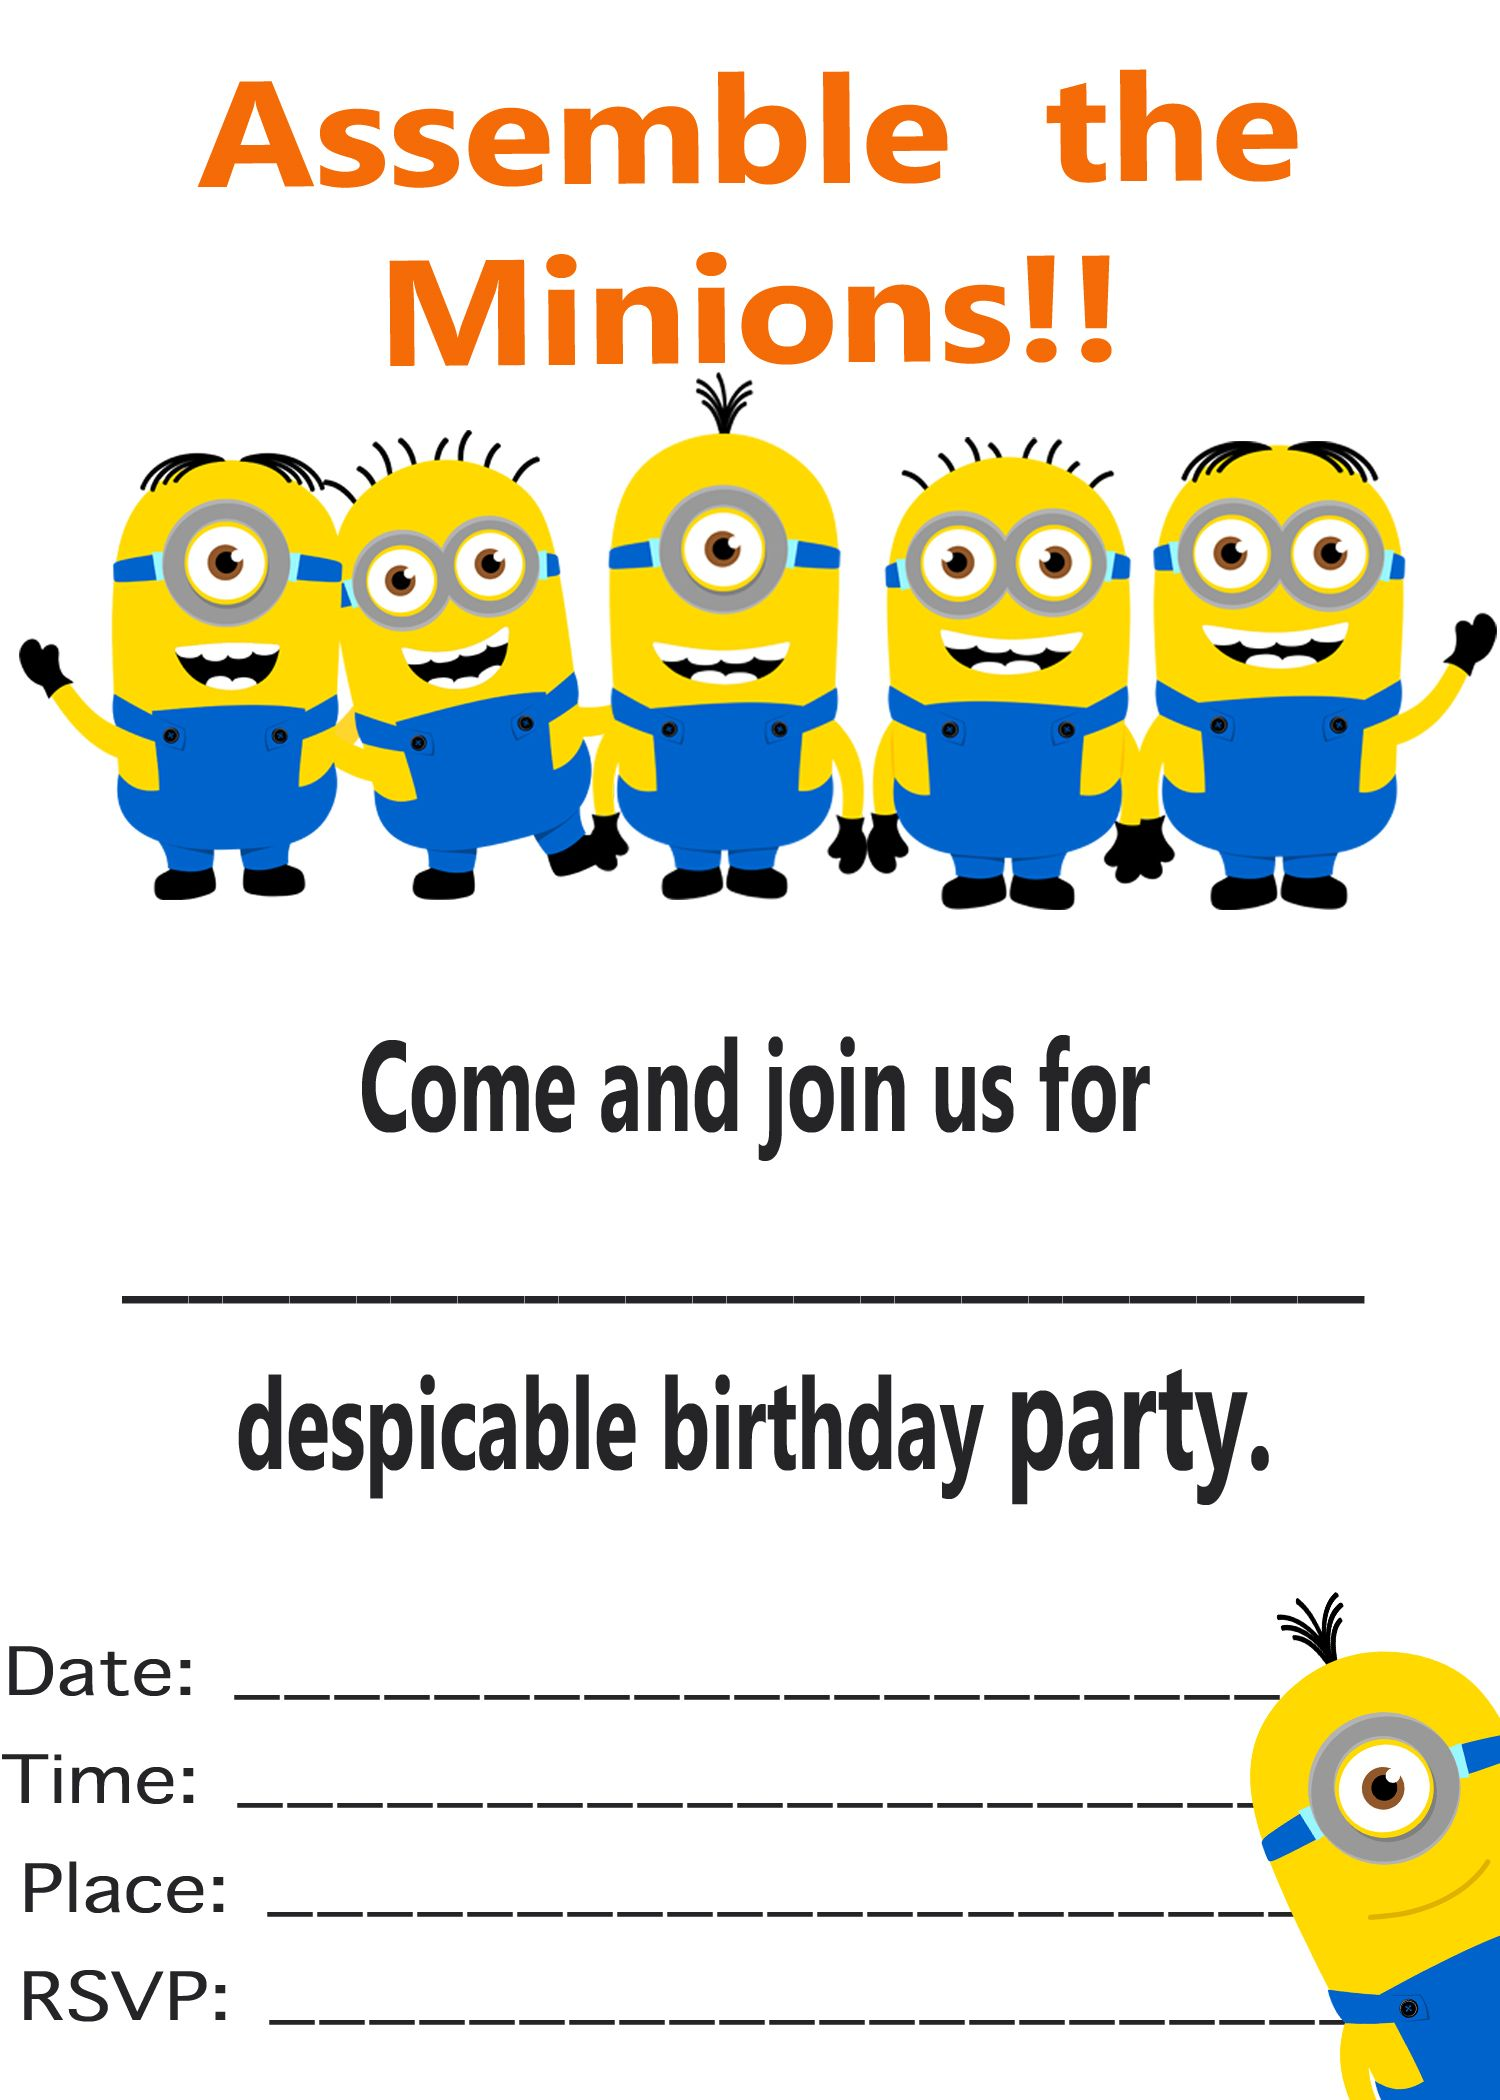 graphic regarding Free Printable Minion Invitations referred to as Minion Invitation Printable Templates Minions/Despicable